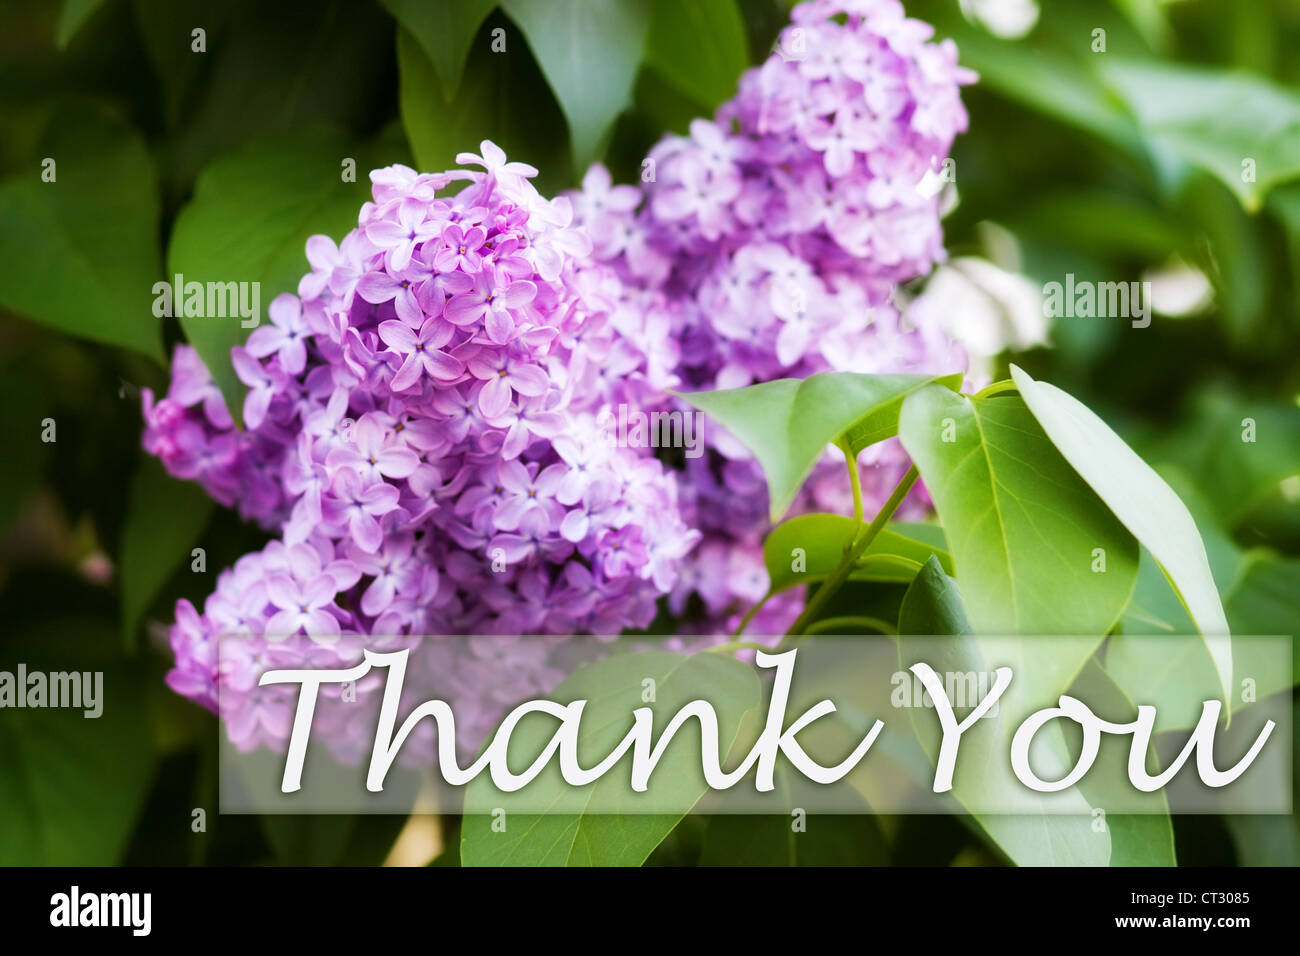 'Thank you' - greeting card with beautiful lilac flowers. This image is exclusive to Alamy. - Stock Image